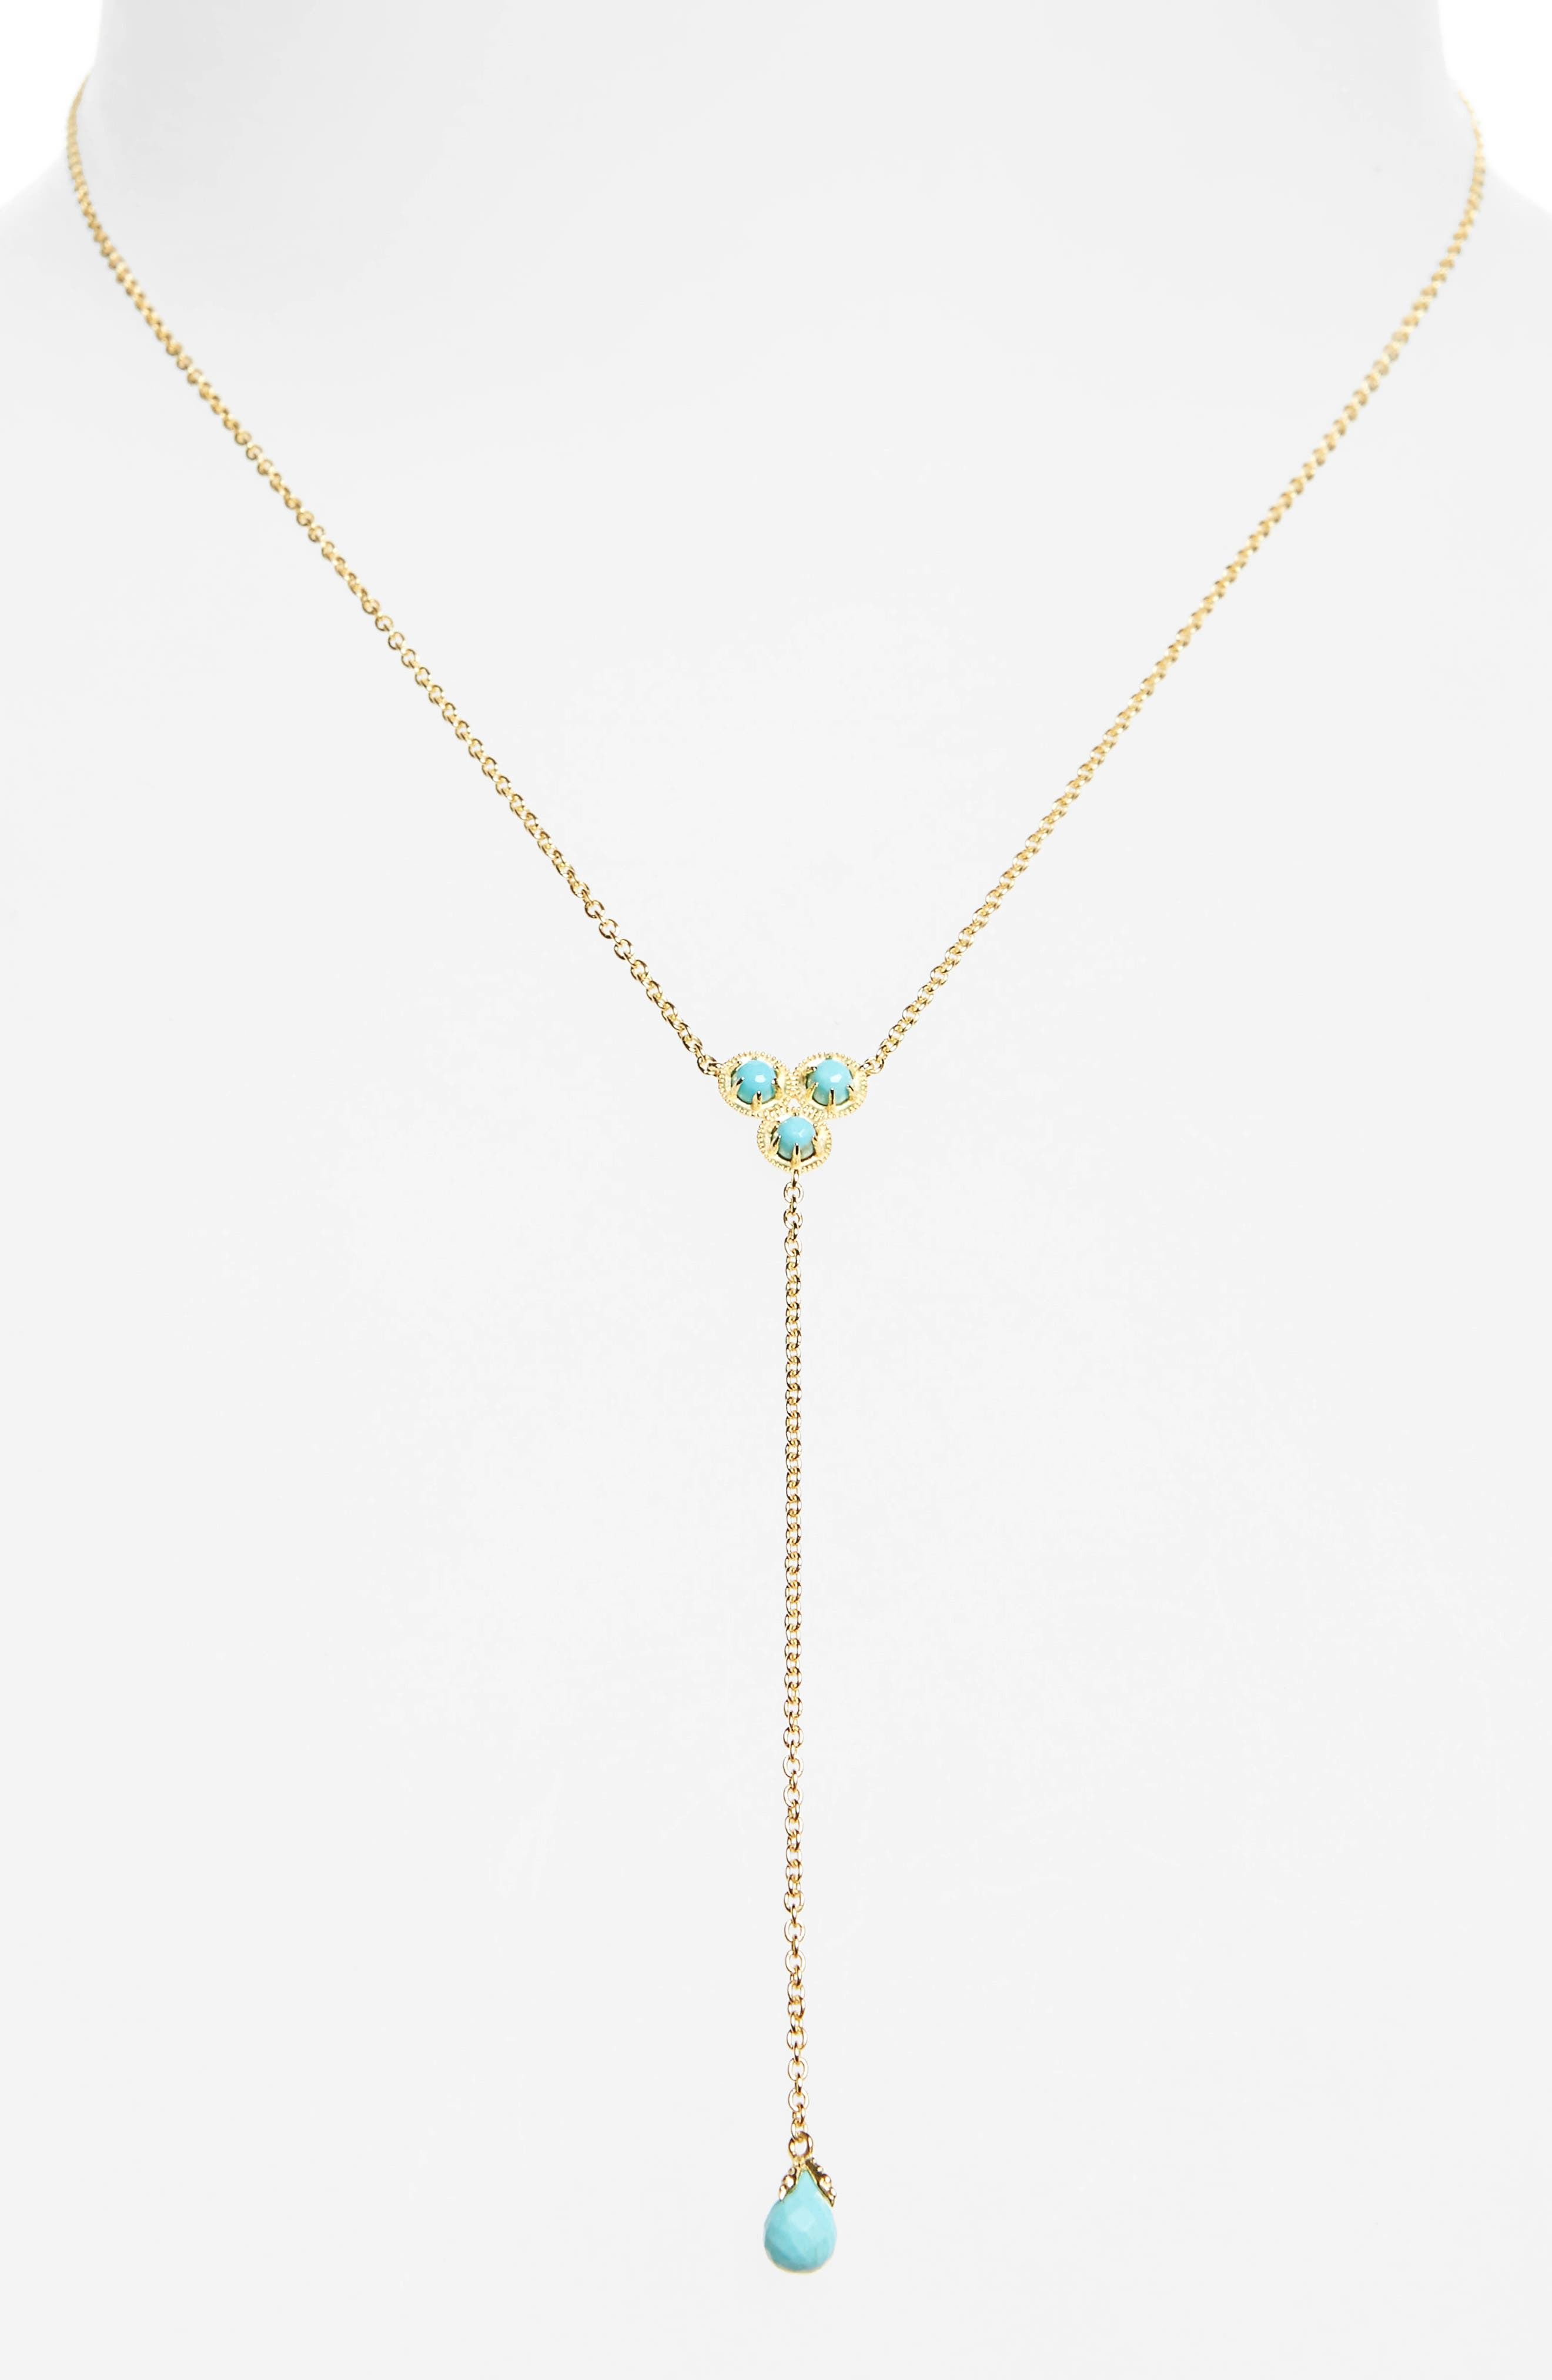 Cleo Semiprecious Stone Necklace,                             Main thumbnail 1, color,                             Turquoise/ Gold